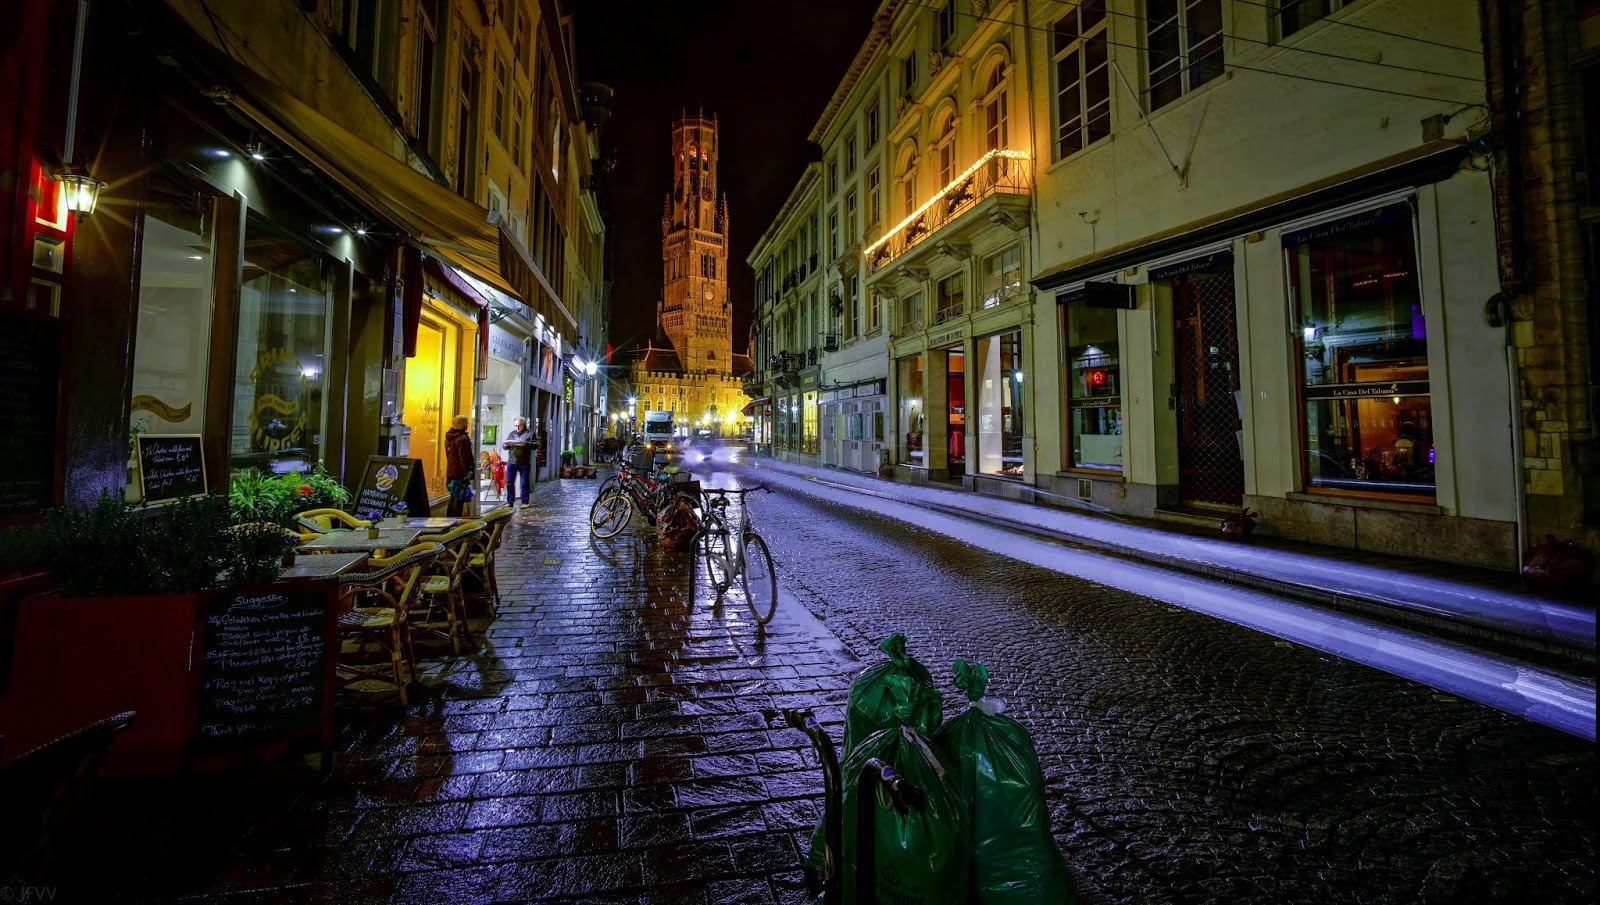 vanveenjf-bruges at night